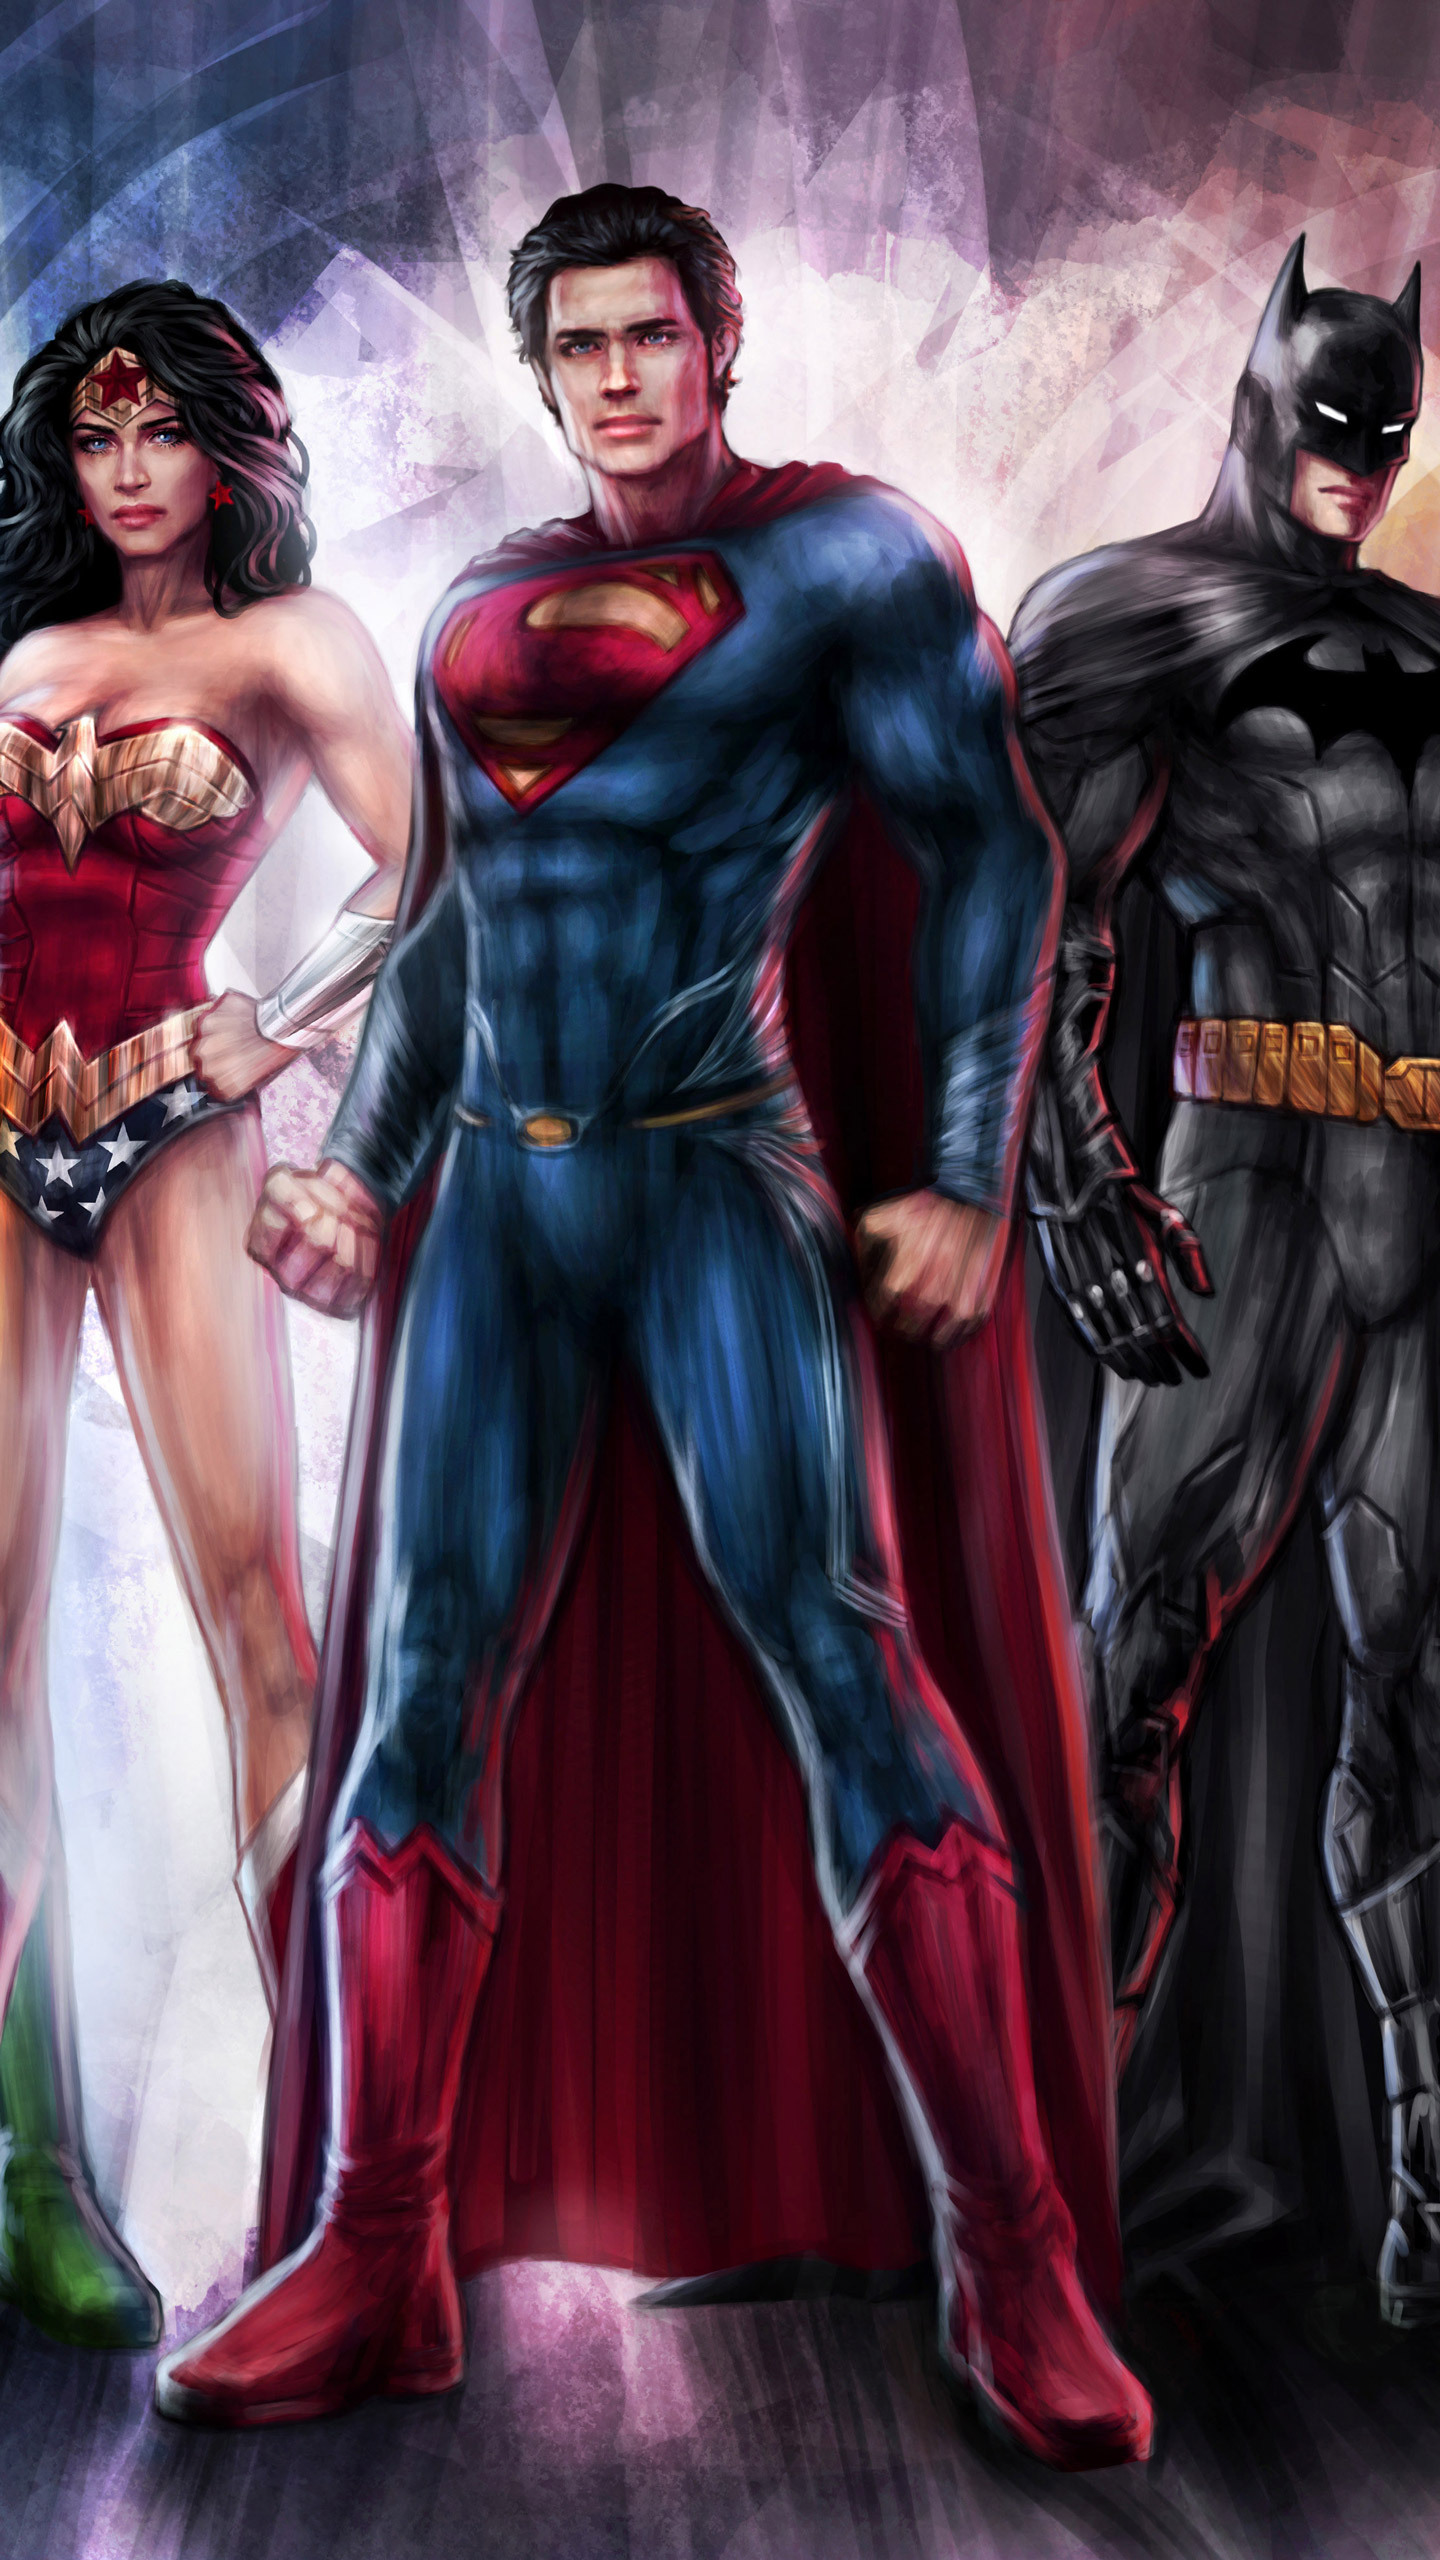 justice-league-art-5k-po.jpg